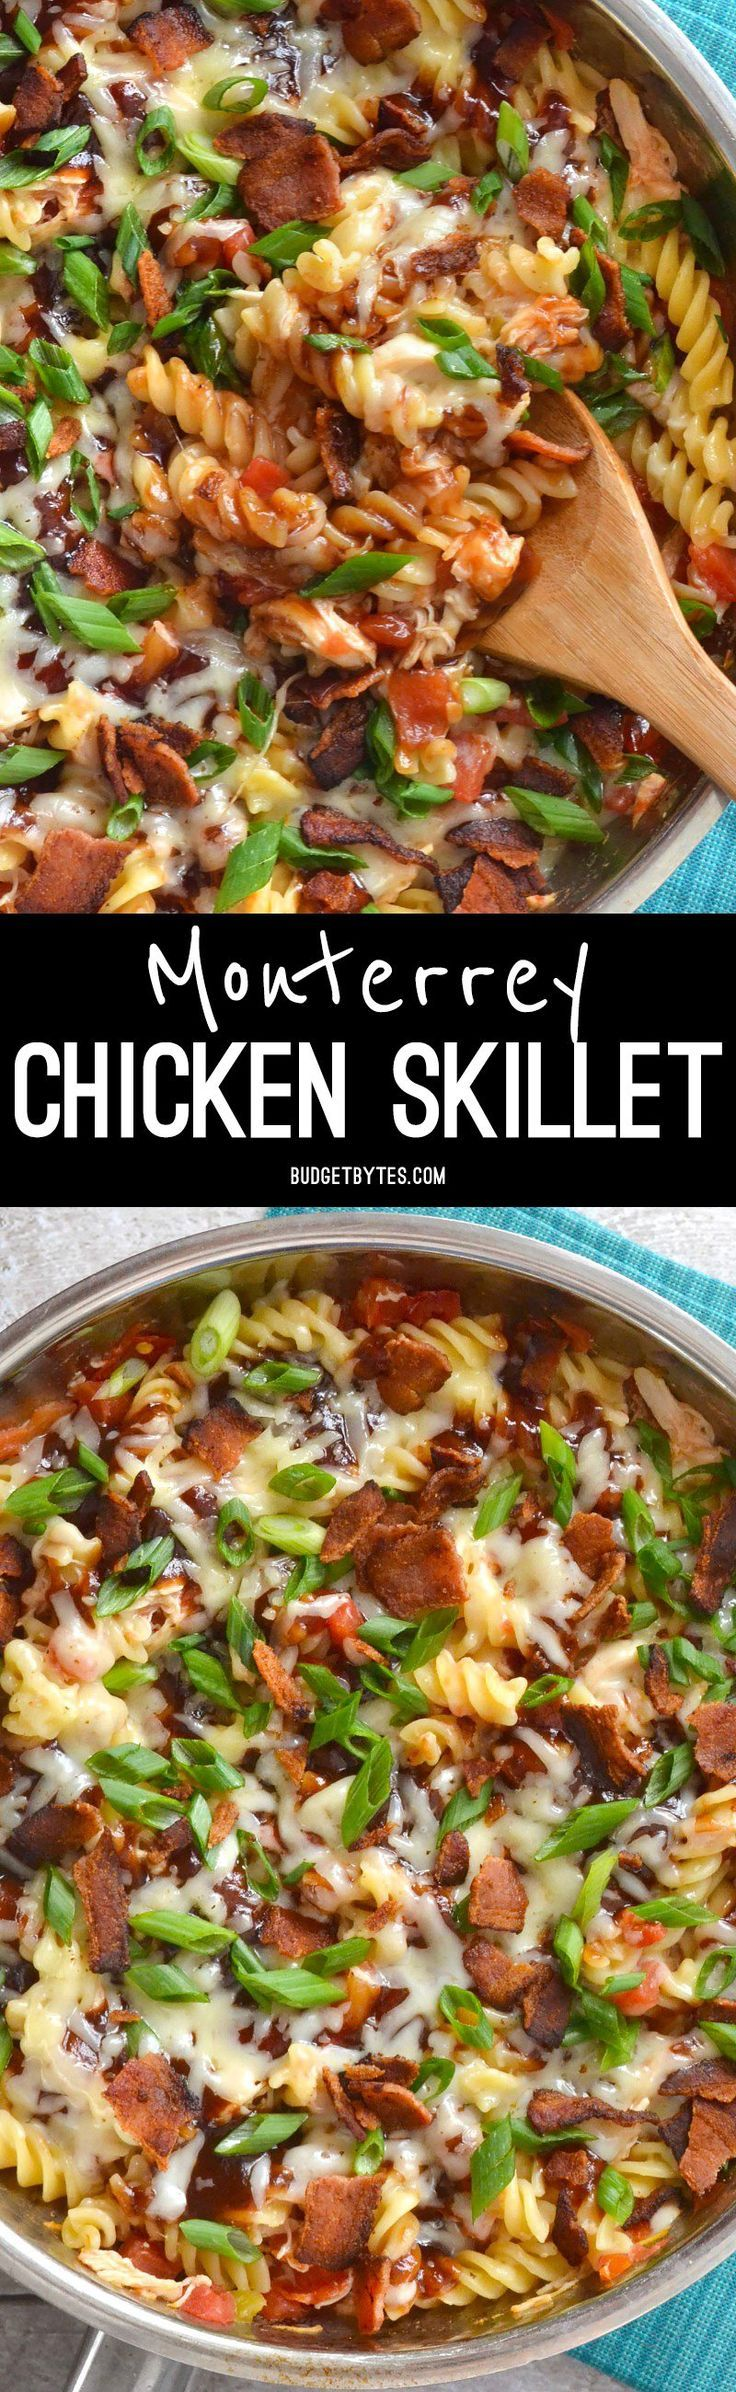 Smoky BBQ sauce, salty bacon, and creamy Monterrey Jack cheese come together in this quick, one-dish Monterrey Chicken Skillet. @budgetbytes